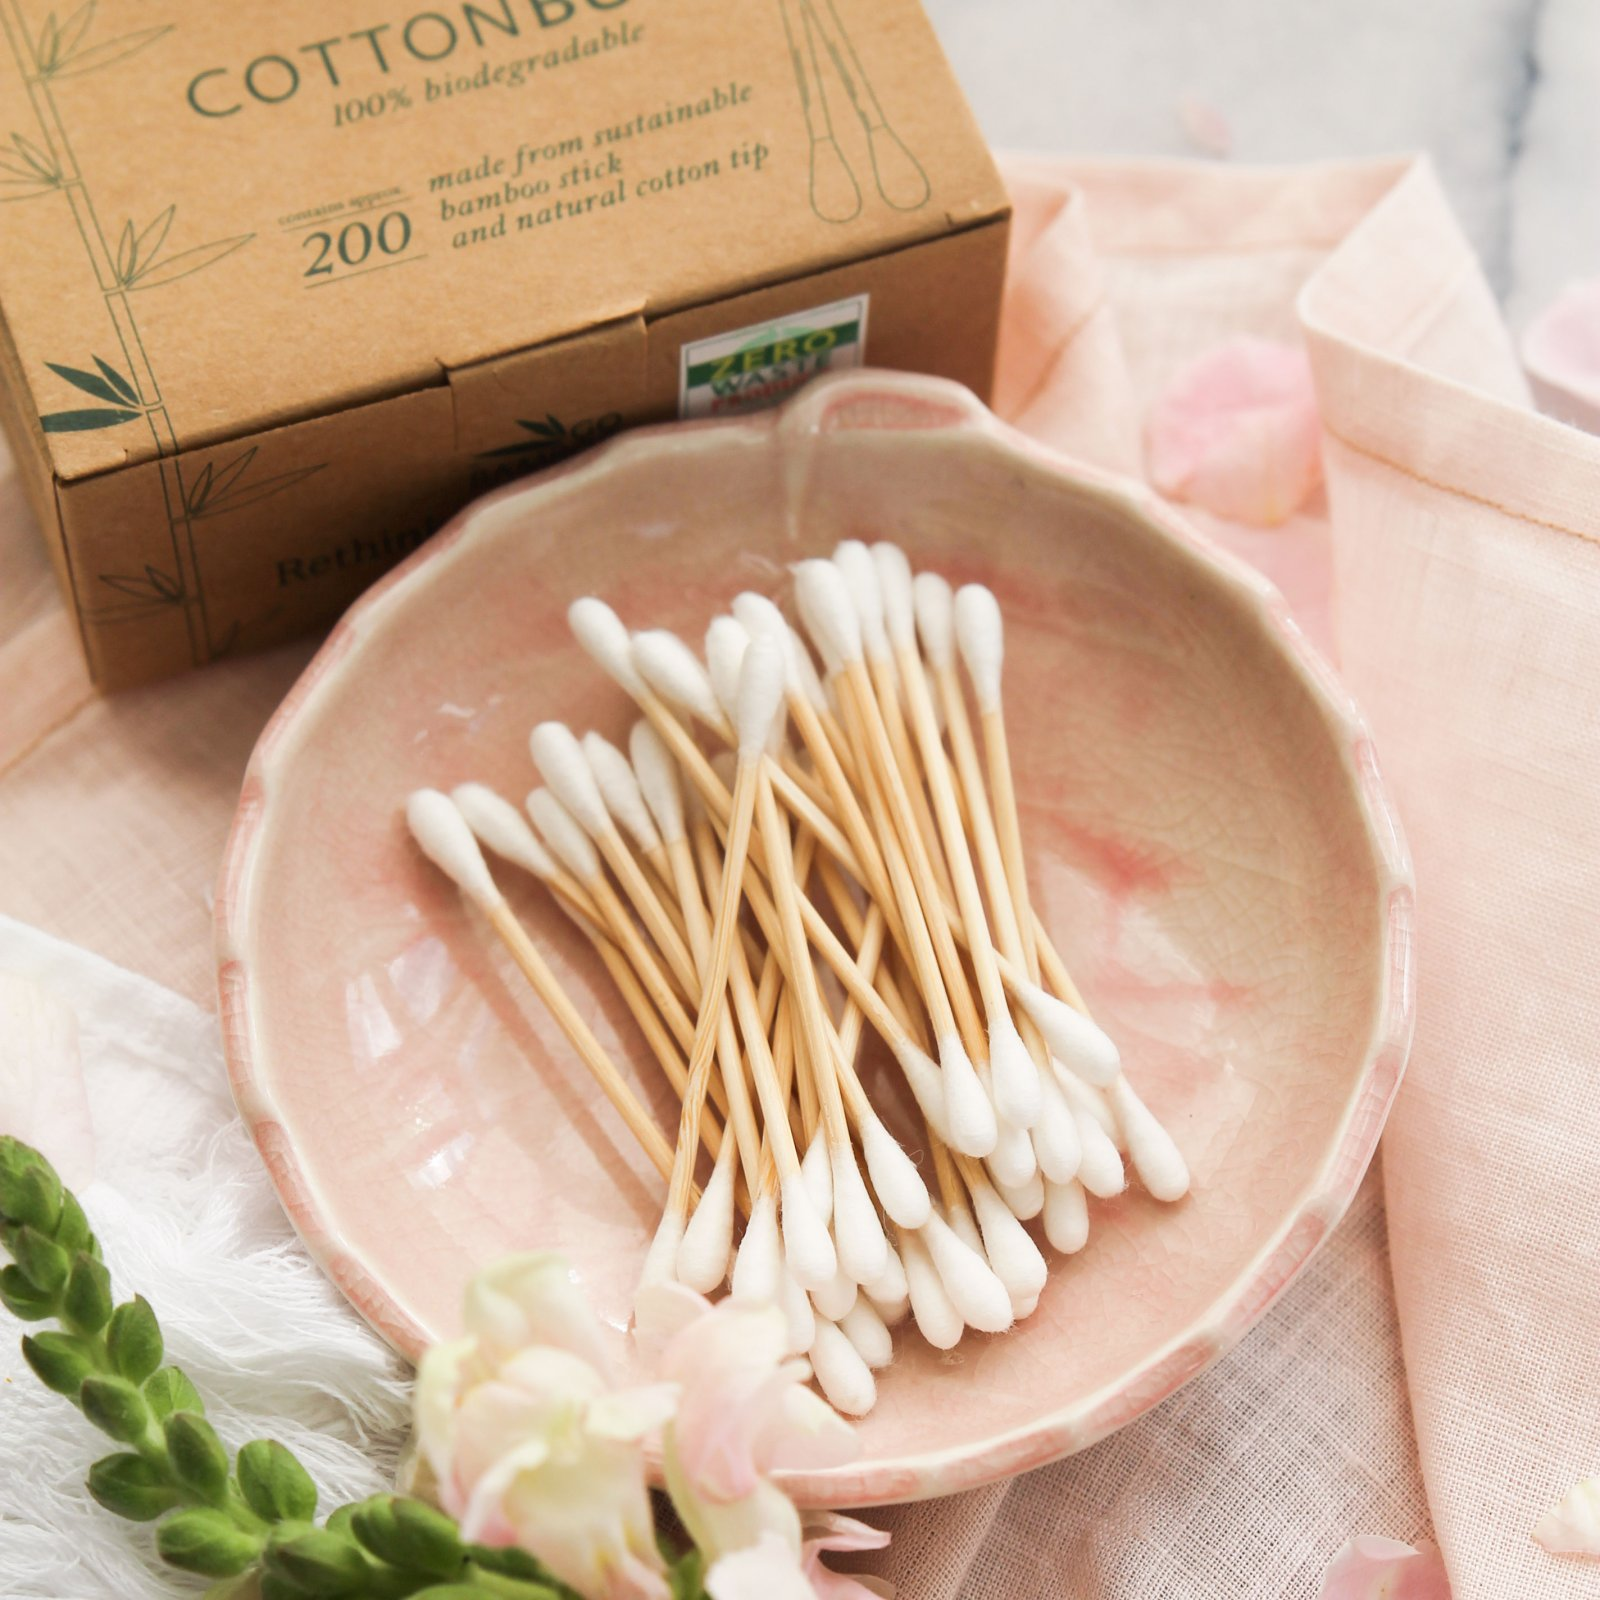 Go Bamboo Biodegradable Cotton Buds Oh Natural